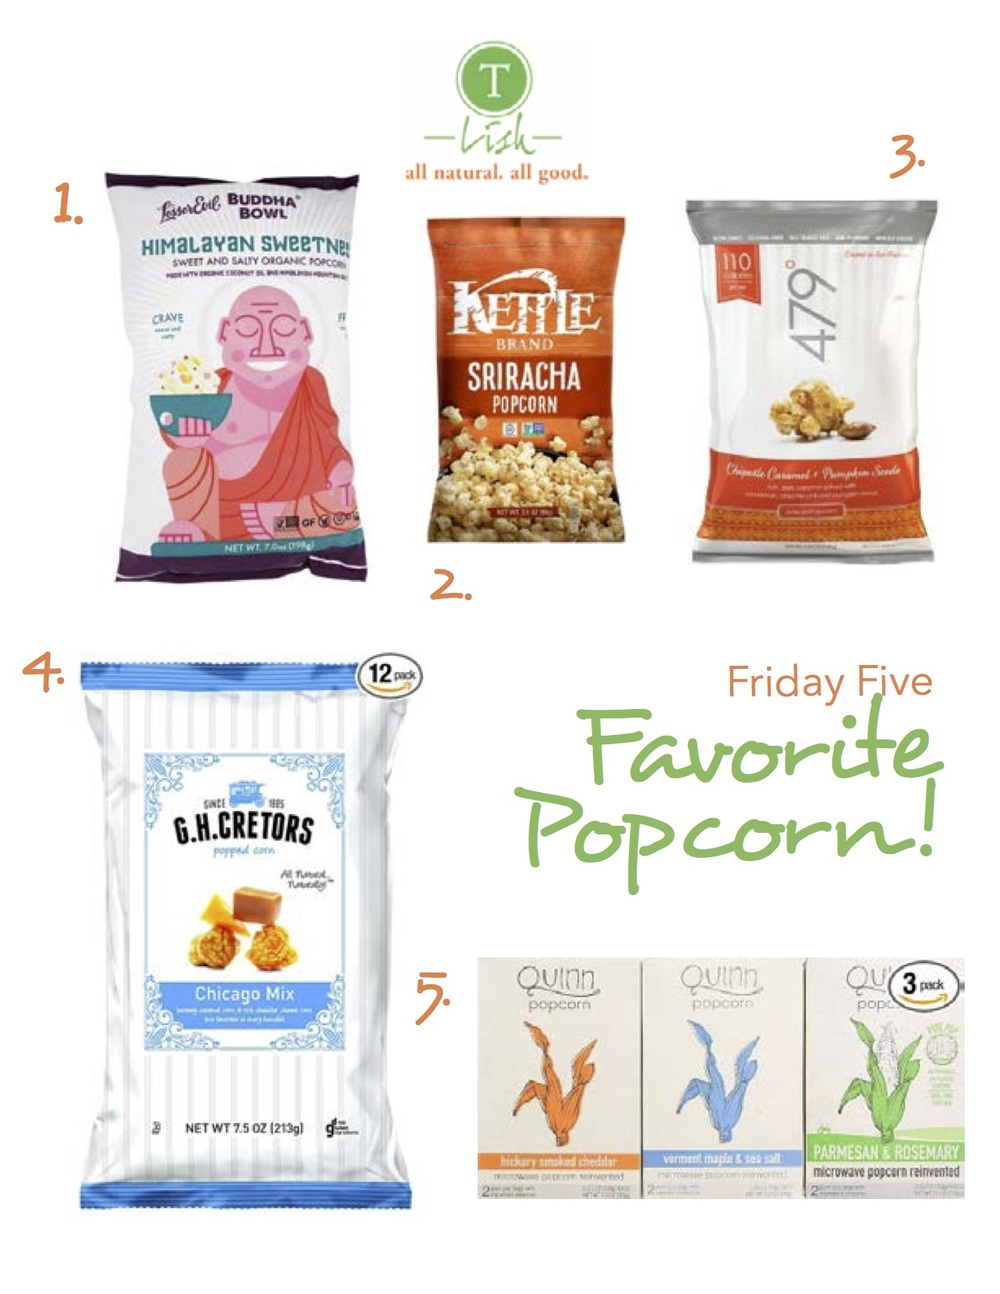 1. Budda Bowl Organic Popcorn Himalayan Sweetness: Himalayan Pink Salt and pure sugar cane give this popcorn the perfect balance between salty and sweet. Lesser Evil also uses organic coconut oil when making their products 2. Kettle Foods Popcorn Sriracha: Everything I love about hot sauce but on popcorn, making this the perfect guilt free snack! 3. 479 Degrees Chipotle Caramel + Pumpkin Seeds: You may be thinking this is too many flavors thrown into one bag but it's surprisingly delicious. I love it as a snack in the fall and winter months. 4. G.H. Cretors Popcorn Chicago Mix: This stuff is ridiculous! You can't eat one handful. It's one of my guilty pleasures. I've been known to pack this in my suitcase.  5. Quinn Popcorn: Microwave Popcorn Reinvented: I couldn't resist since one of my sweet son's is named Quinn. This is microwave popcorn reinvented! My fave is the Rosemary and Parmesan.